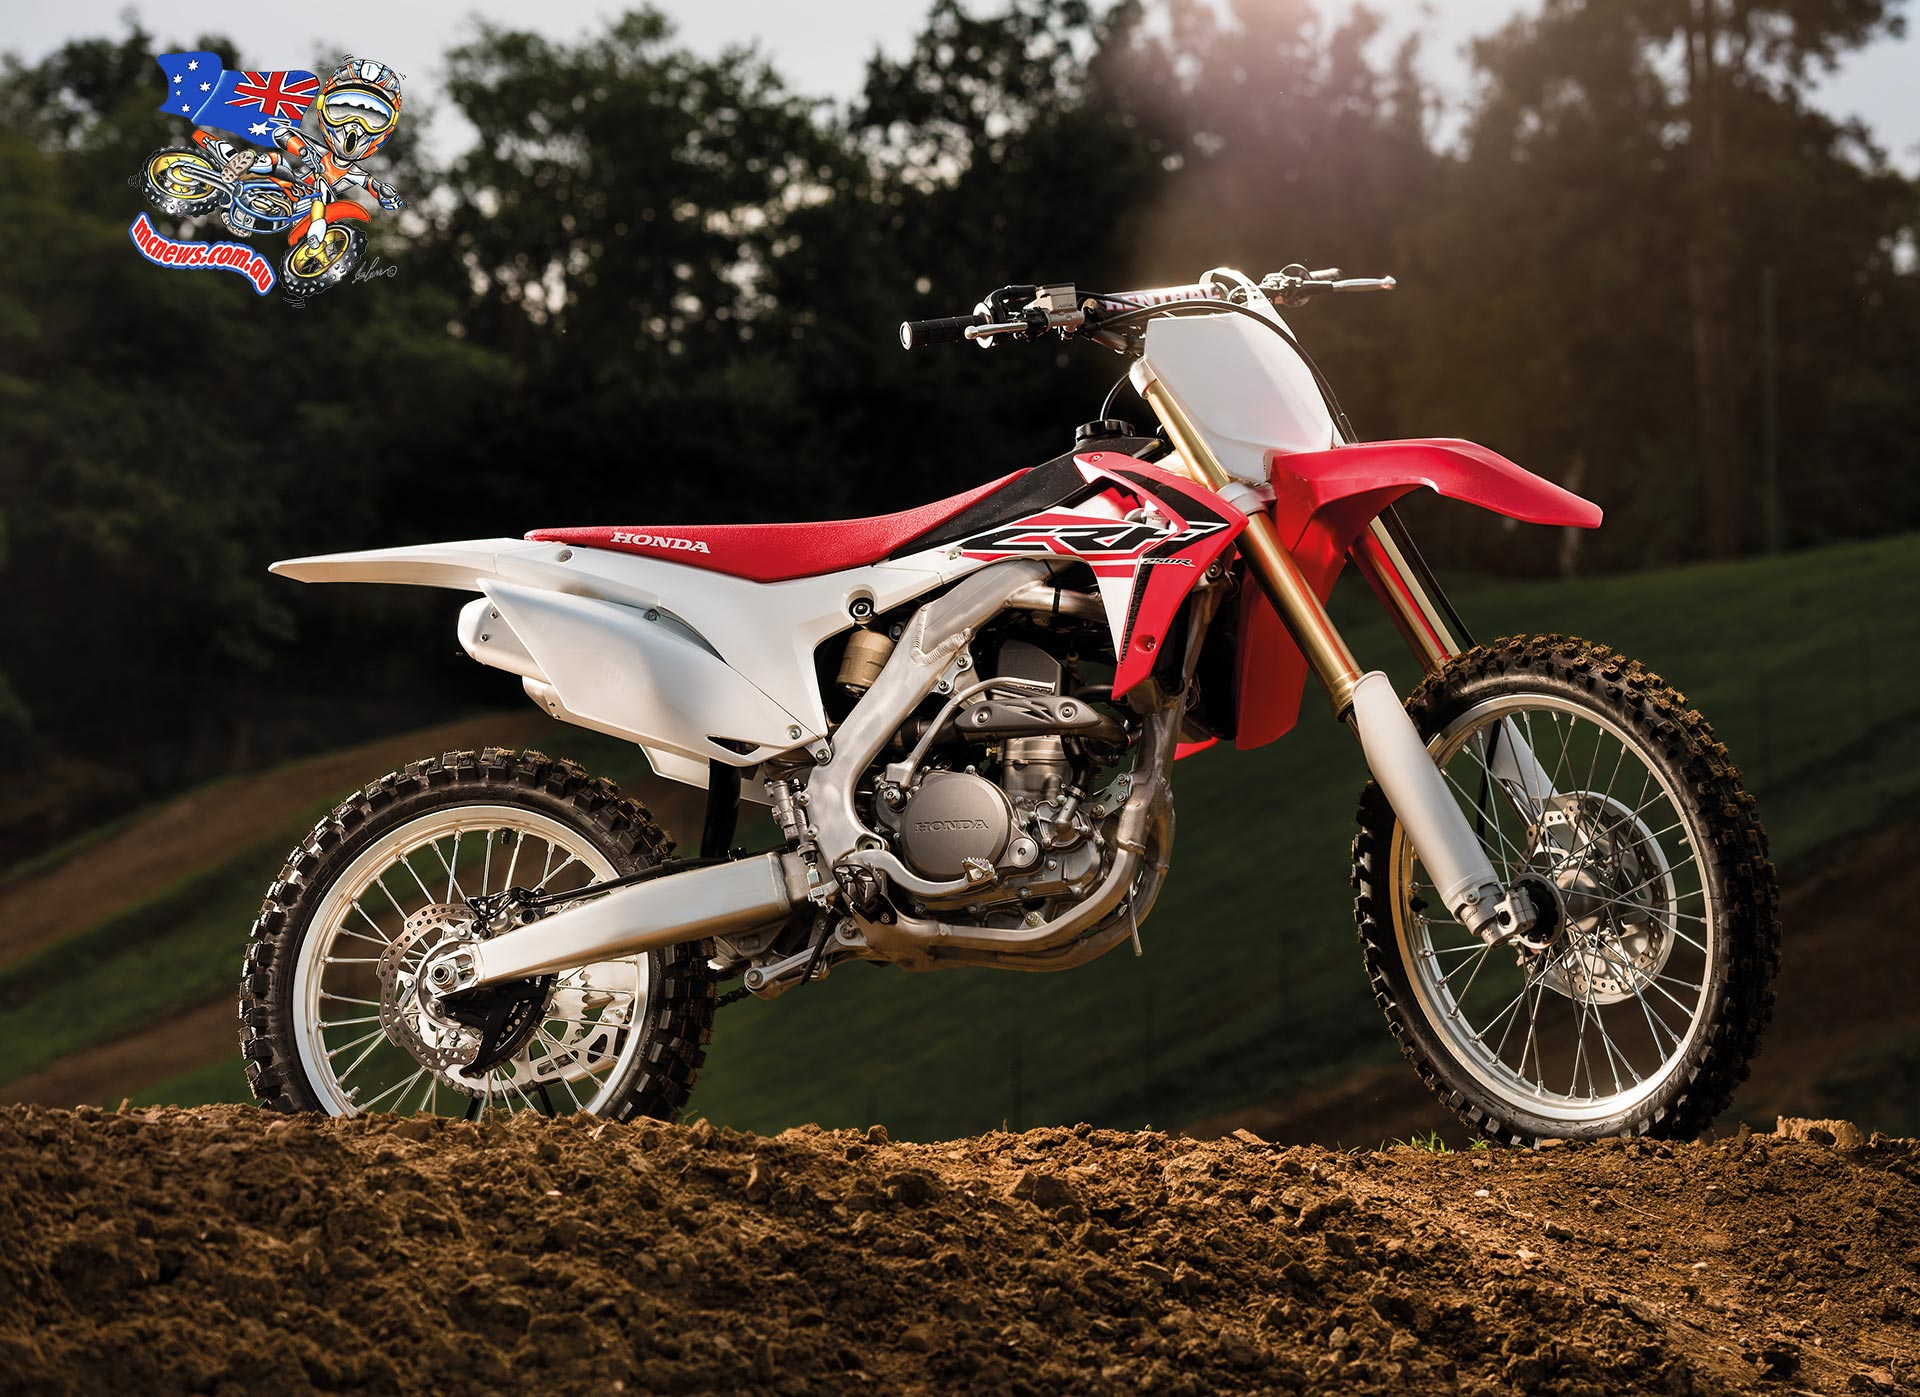 2015 Honda Crf 250 R Pics Specs And Information Dirt Bikes 250cc 30047